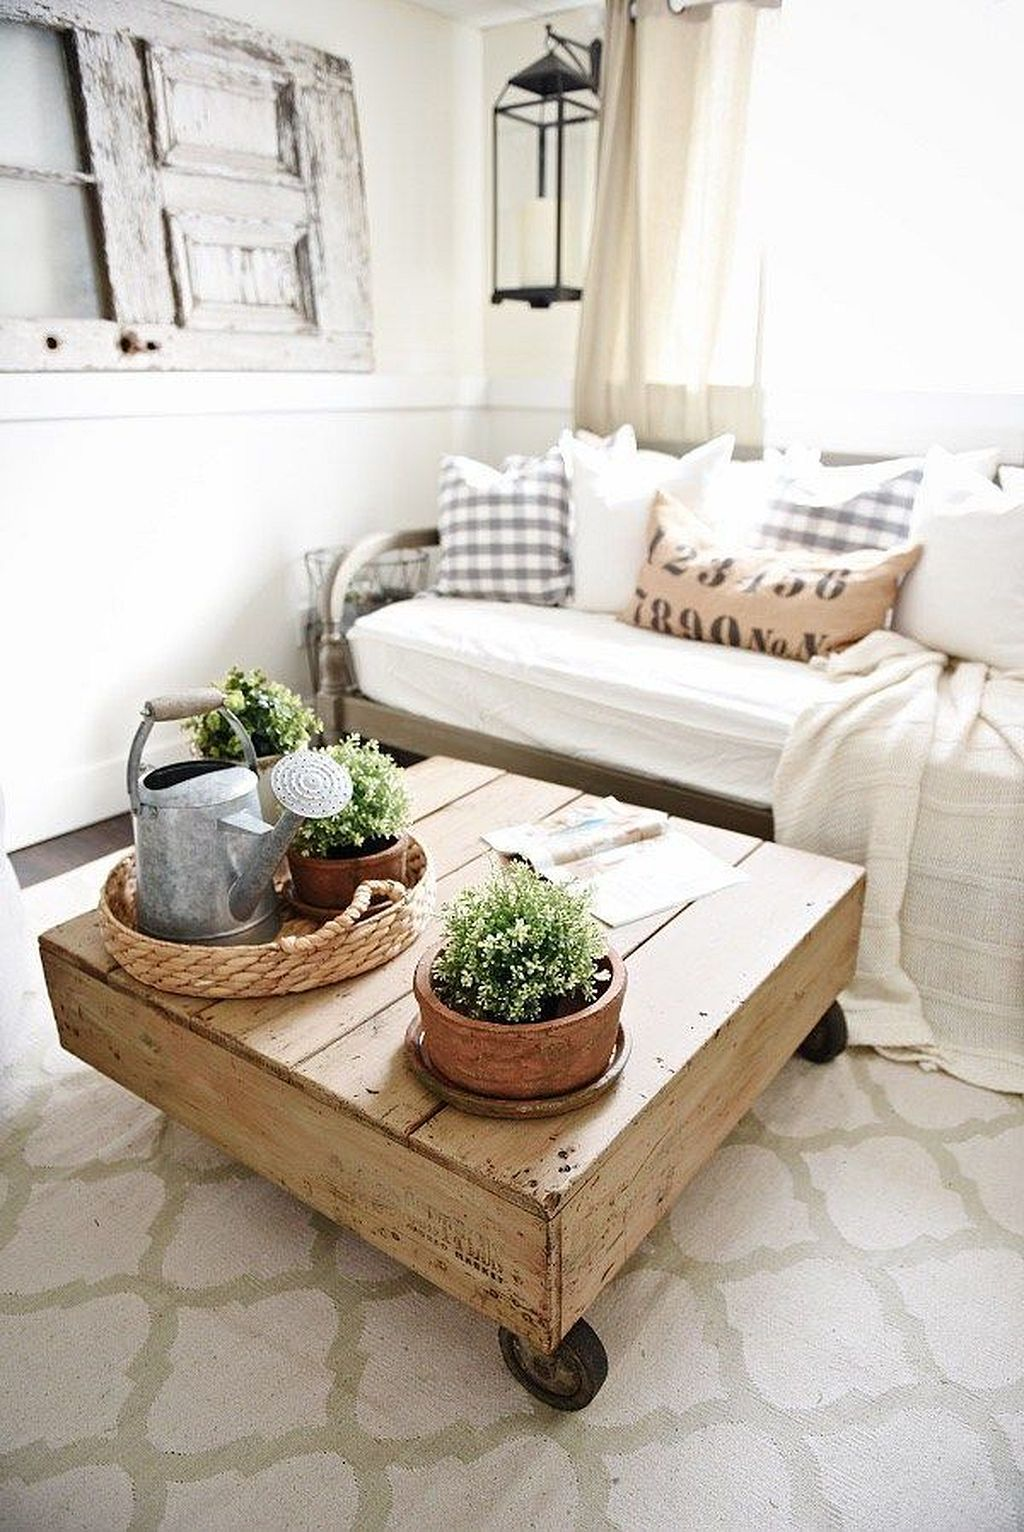 Stunning 50 Simple DIY Pallet Projects Ideas